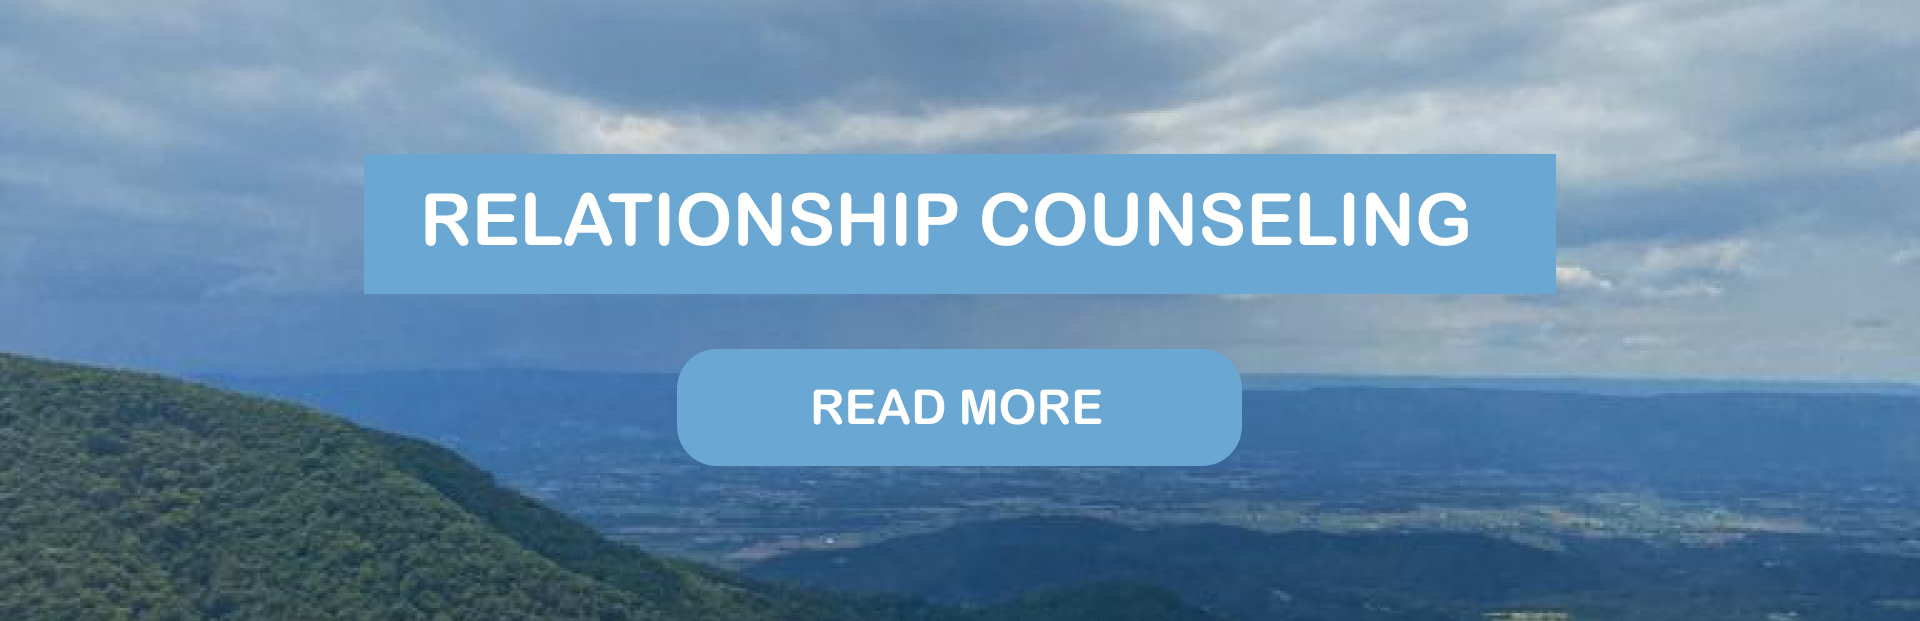 relational psychotherapy header image